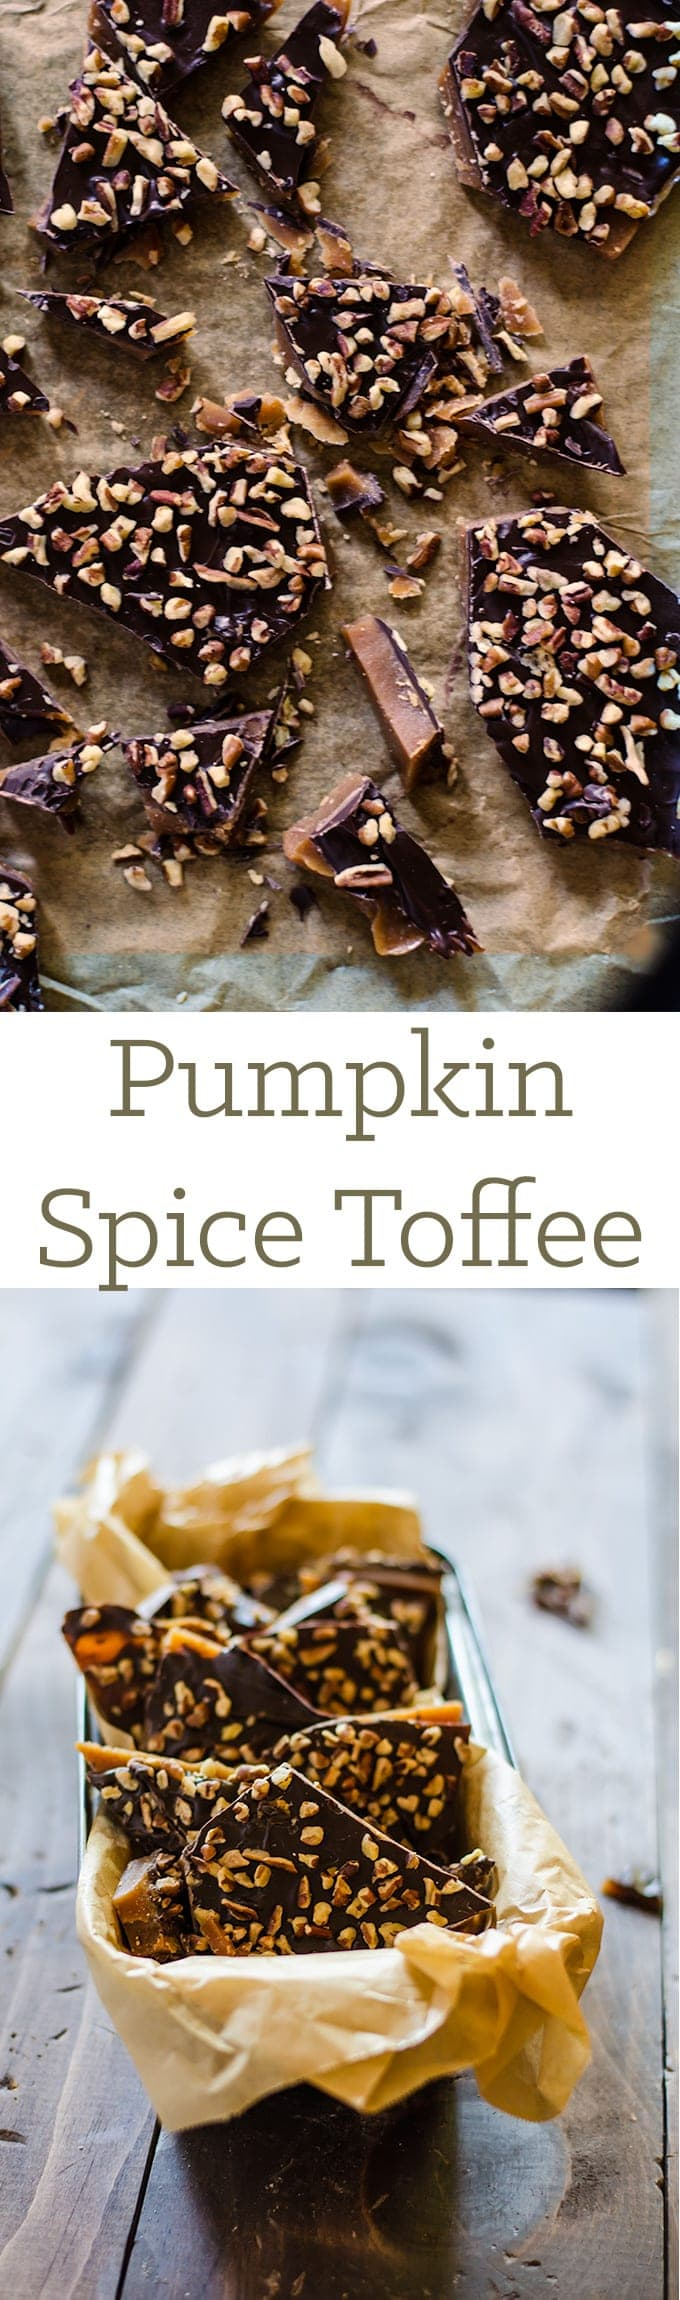 pumpkin spice toffee - what and easy and delicious treat your family and friends will love! The perfect candy to gift for the holidays!